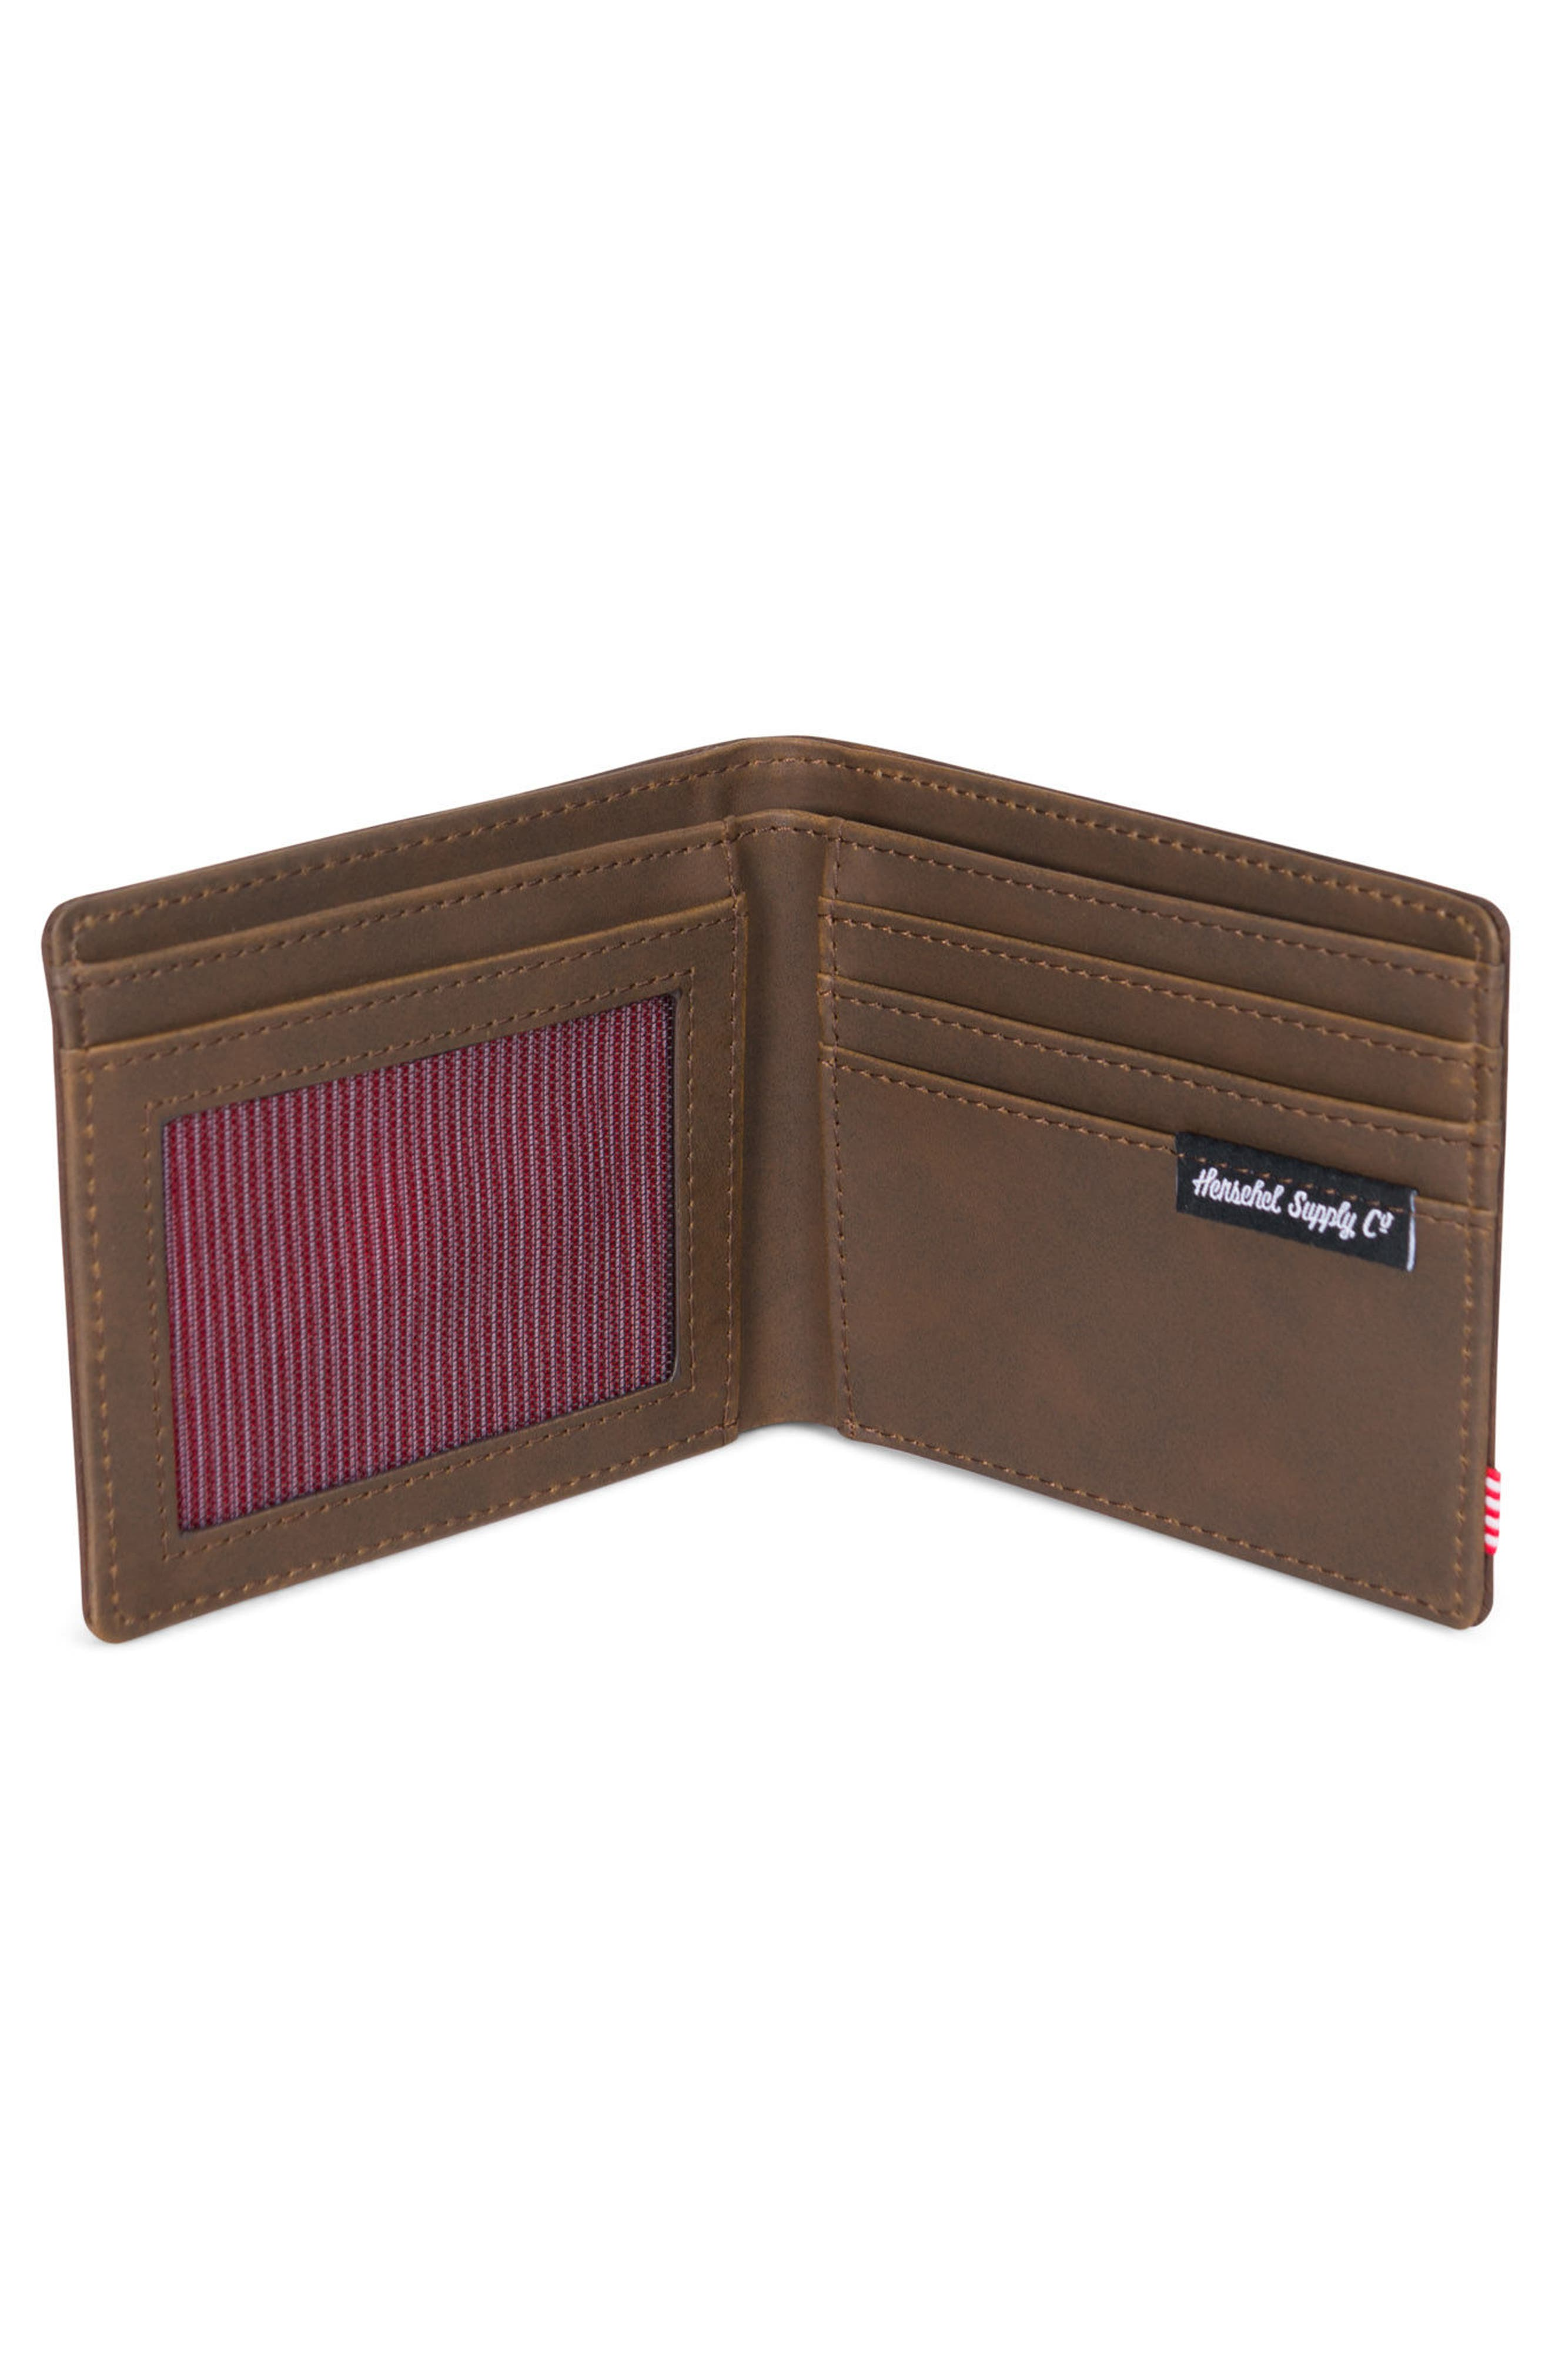 Hank Leather Wallet,                             Alternate thumbnail 2, color,                             Nubuck Leather